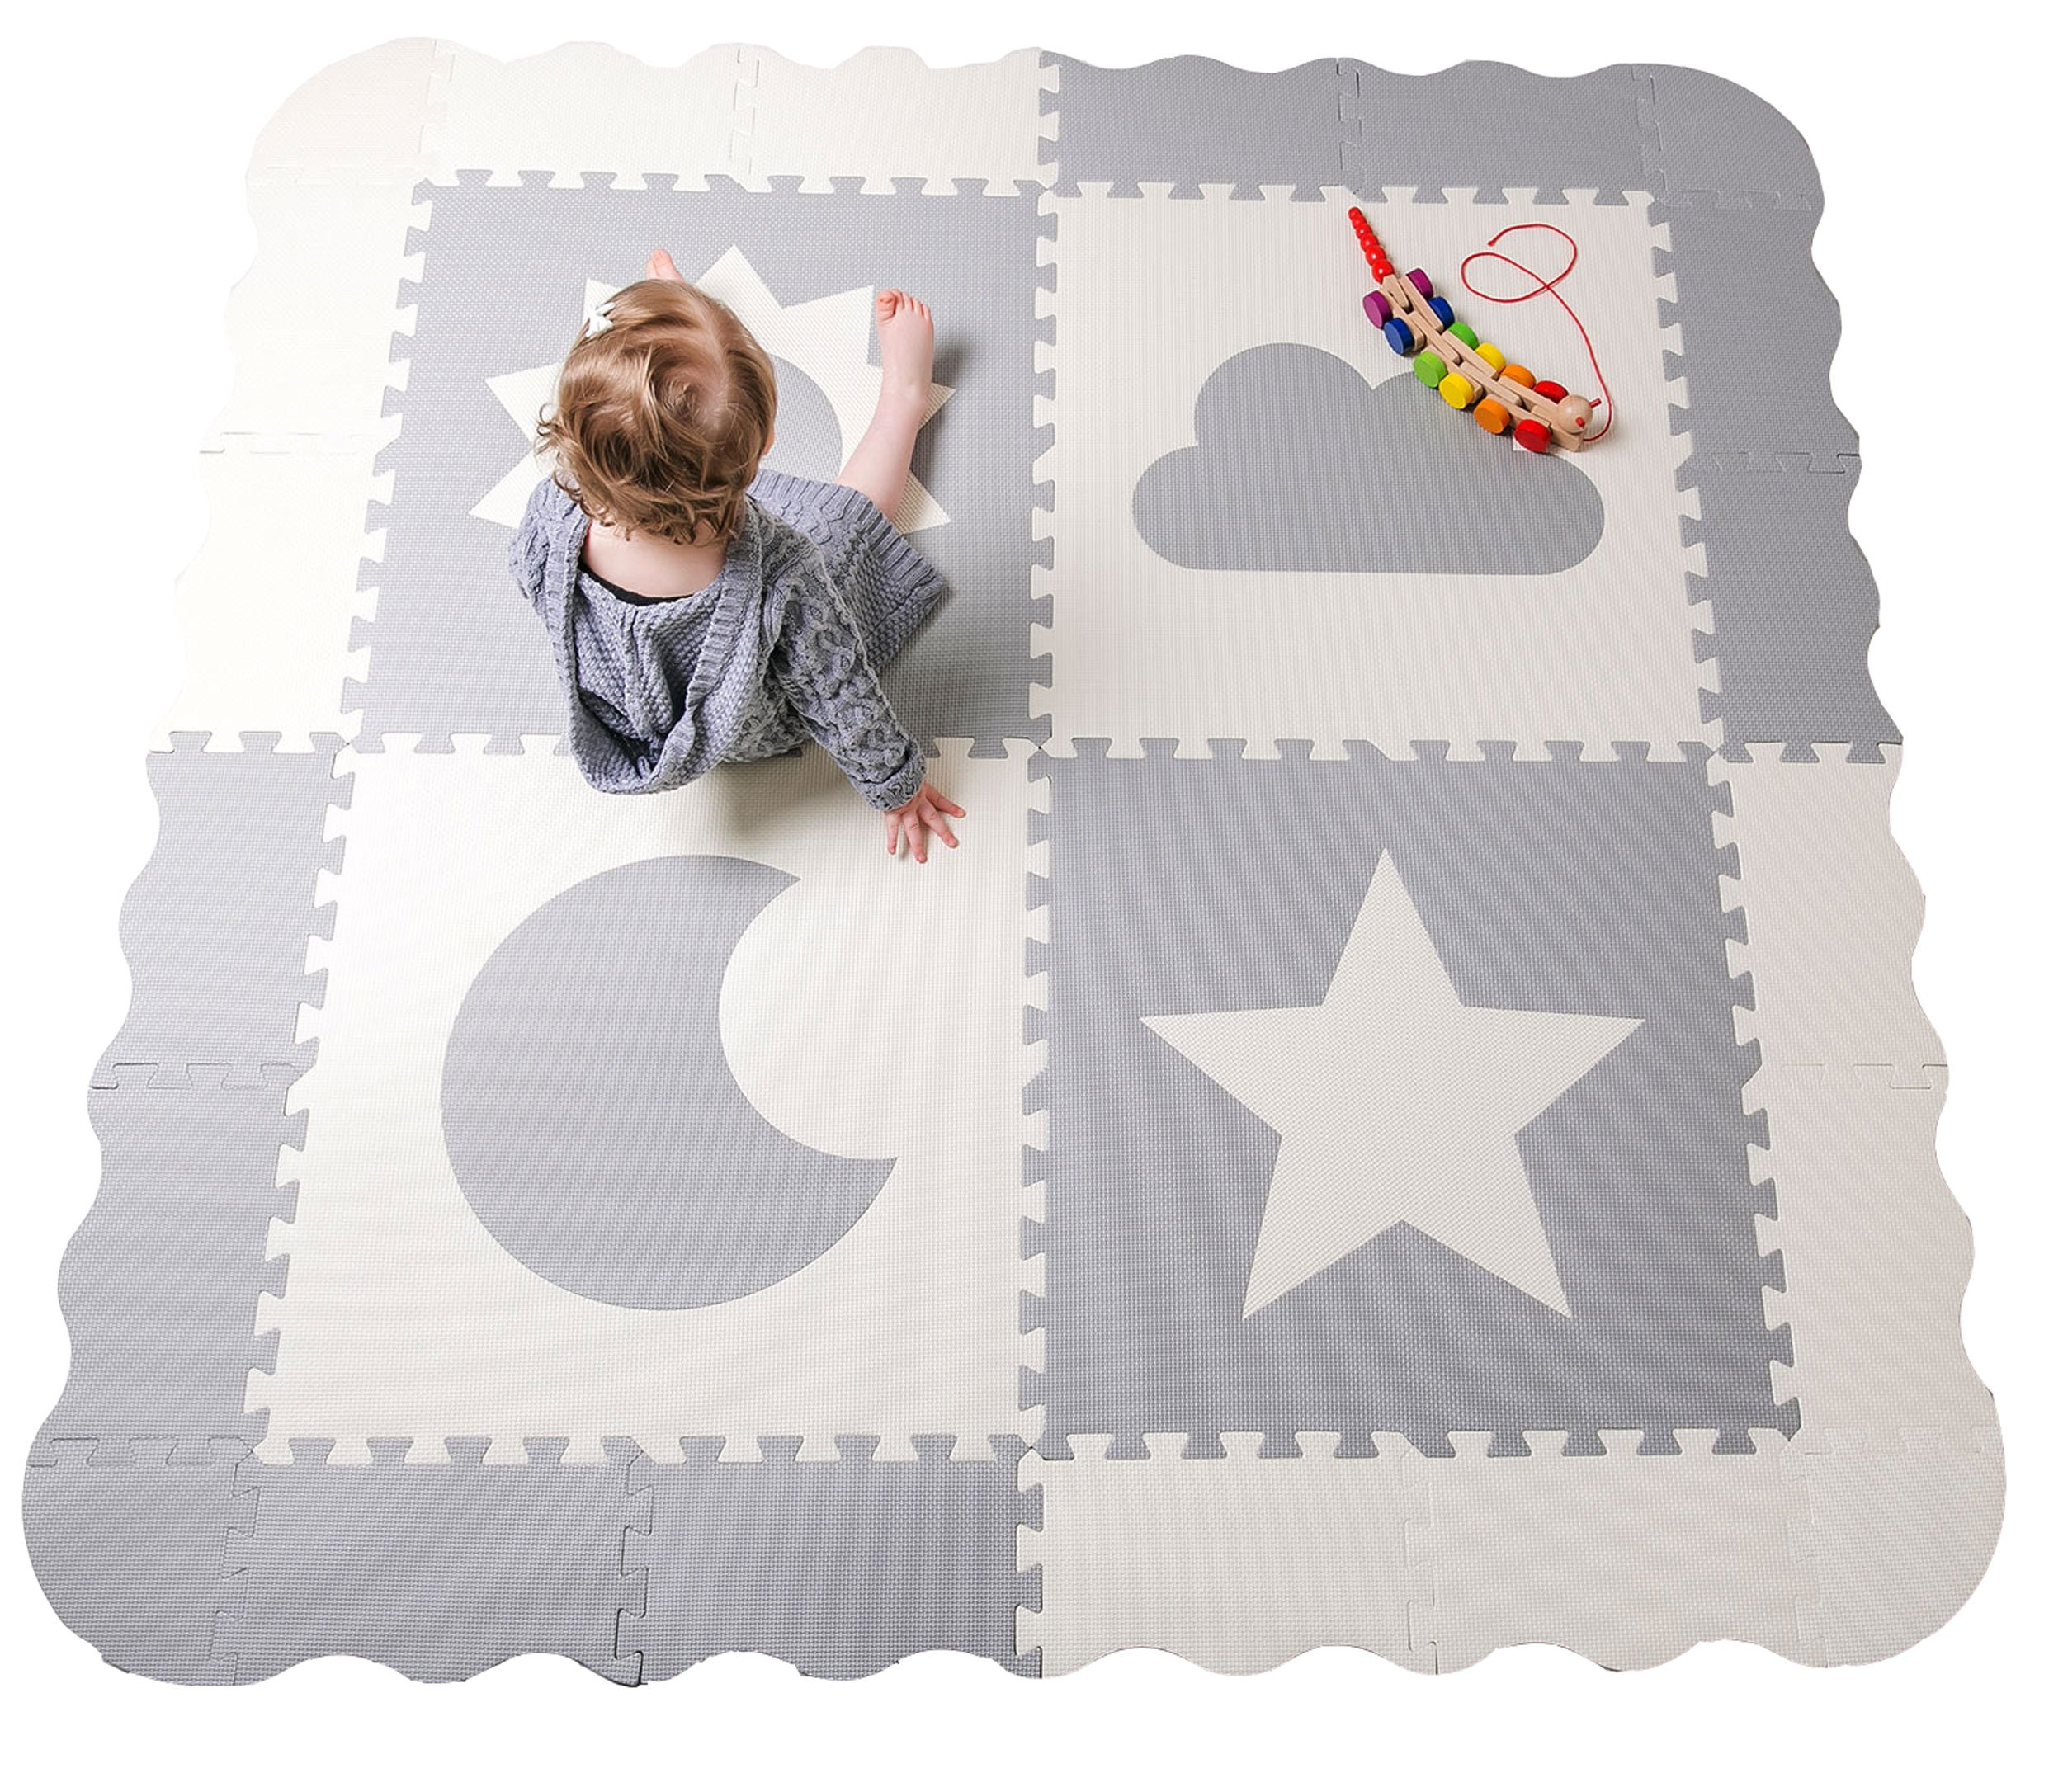 babies ikea cm mat senses for their activate pin stimulate leka different motifs floor and baby play child blue sounds materials mats motor the skills